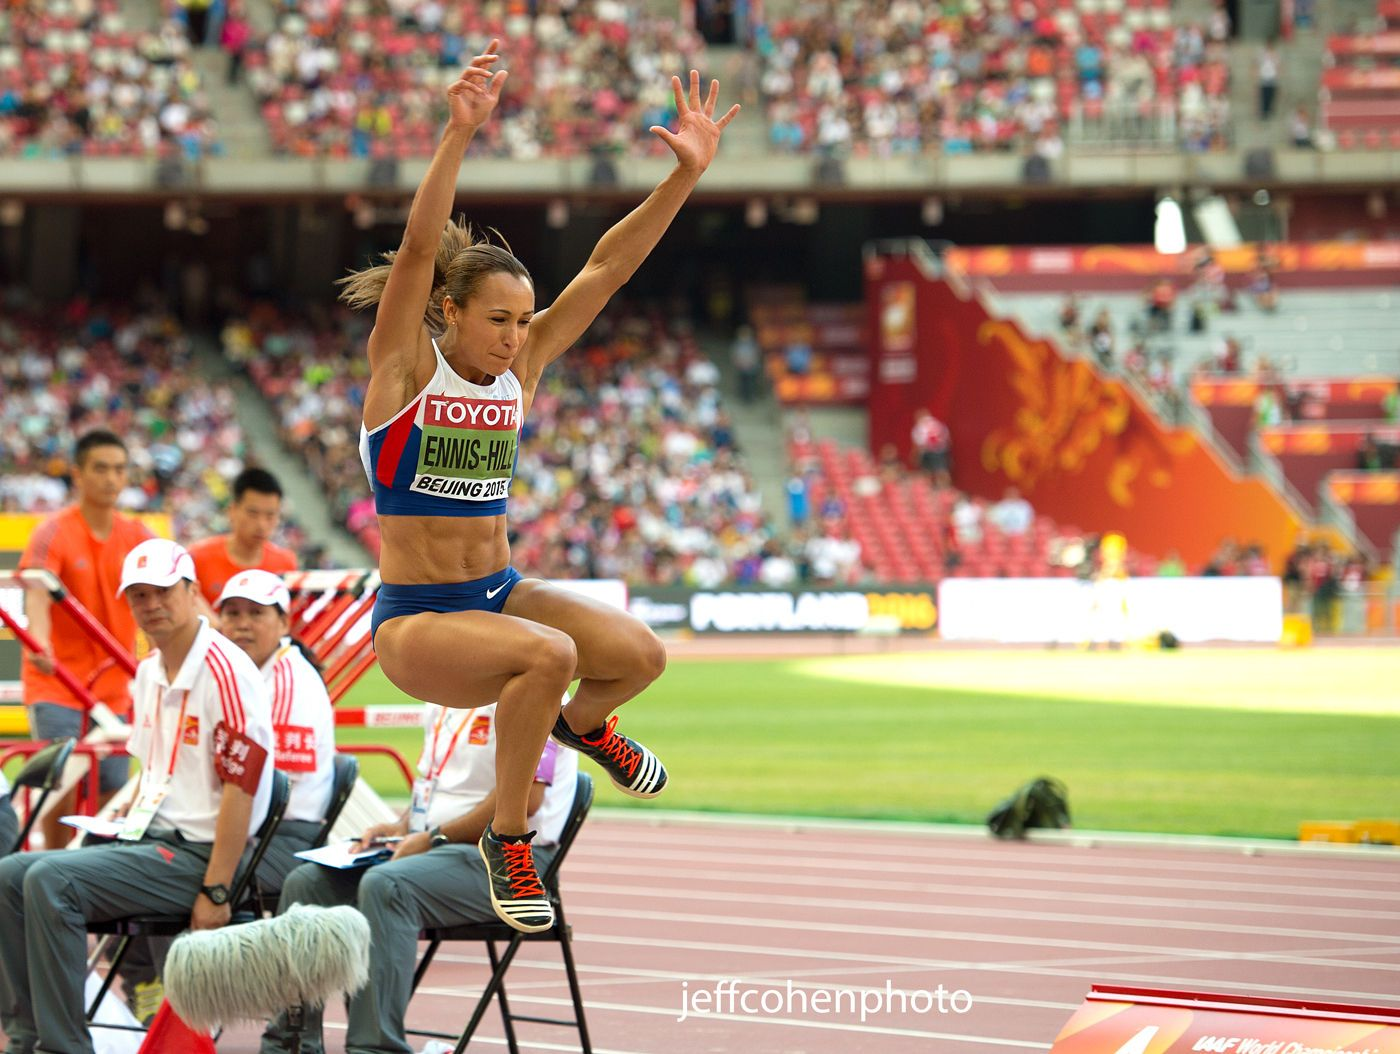 1beijing2015_day2_ennis_hept_lj_jeff_cohen_photo_3601_web.jpg